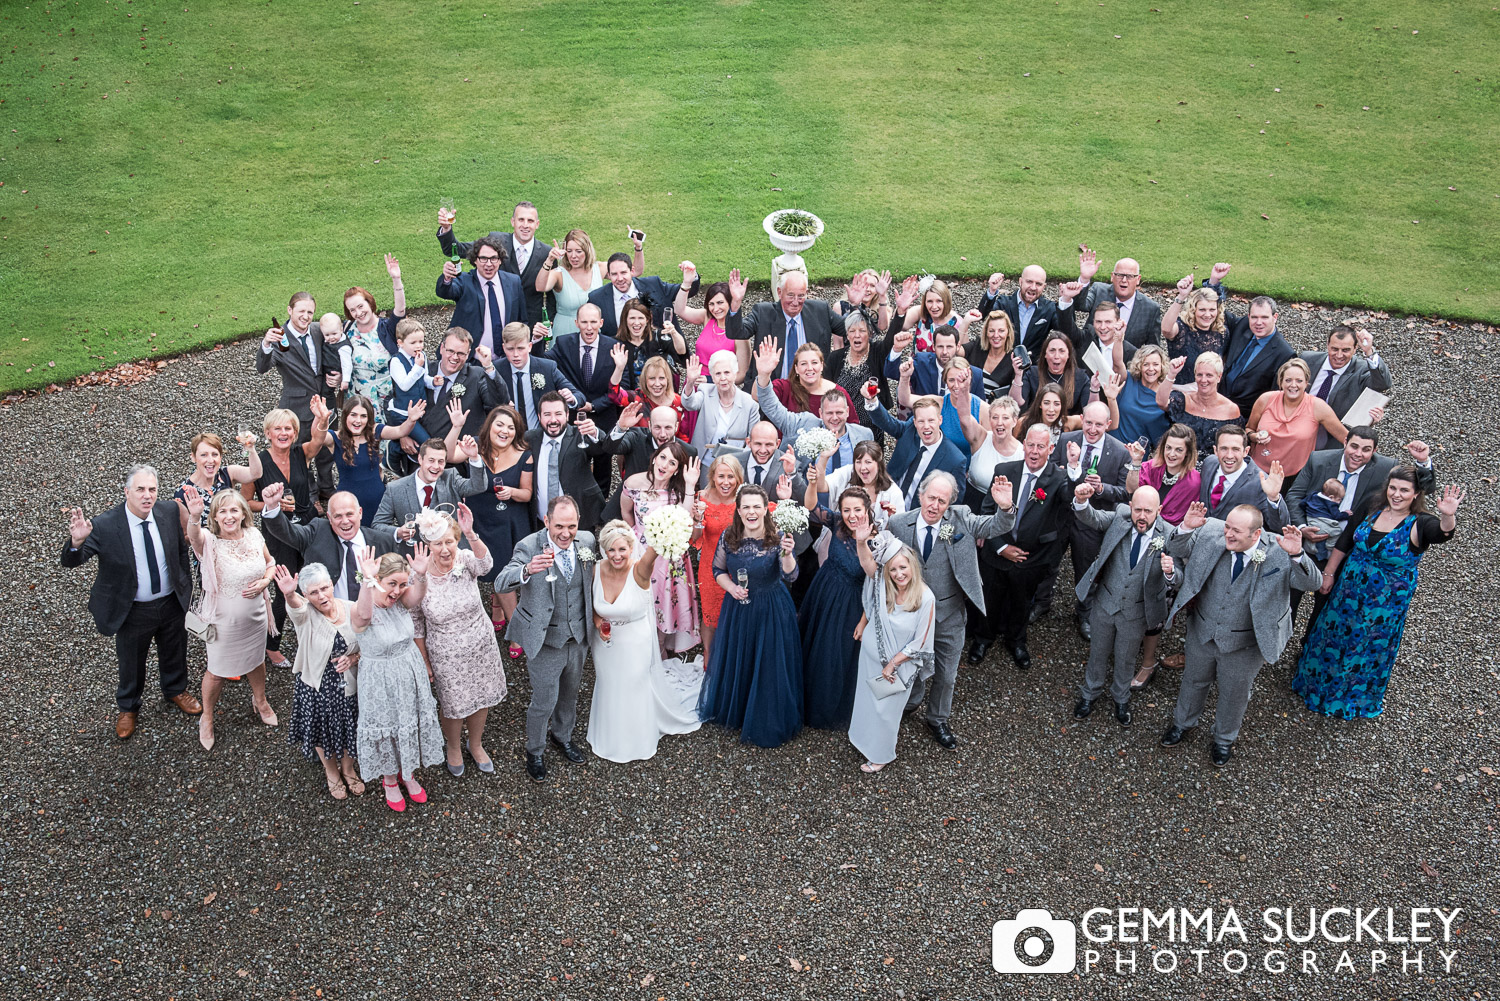 Group photo from above of all the wedding guests from the window of Belmount Hall